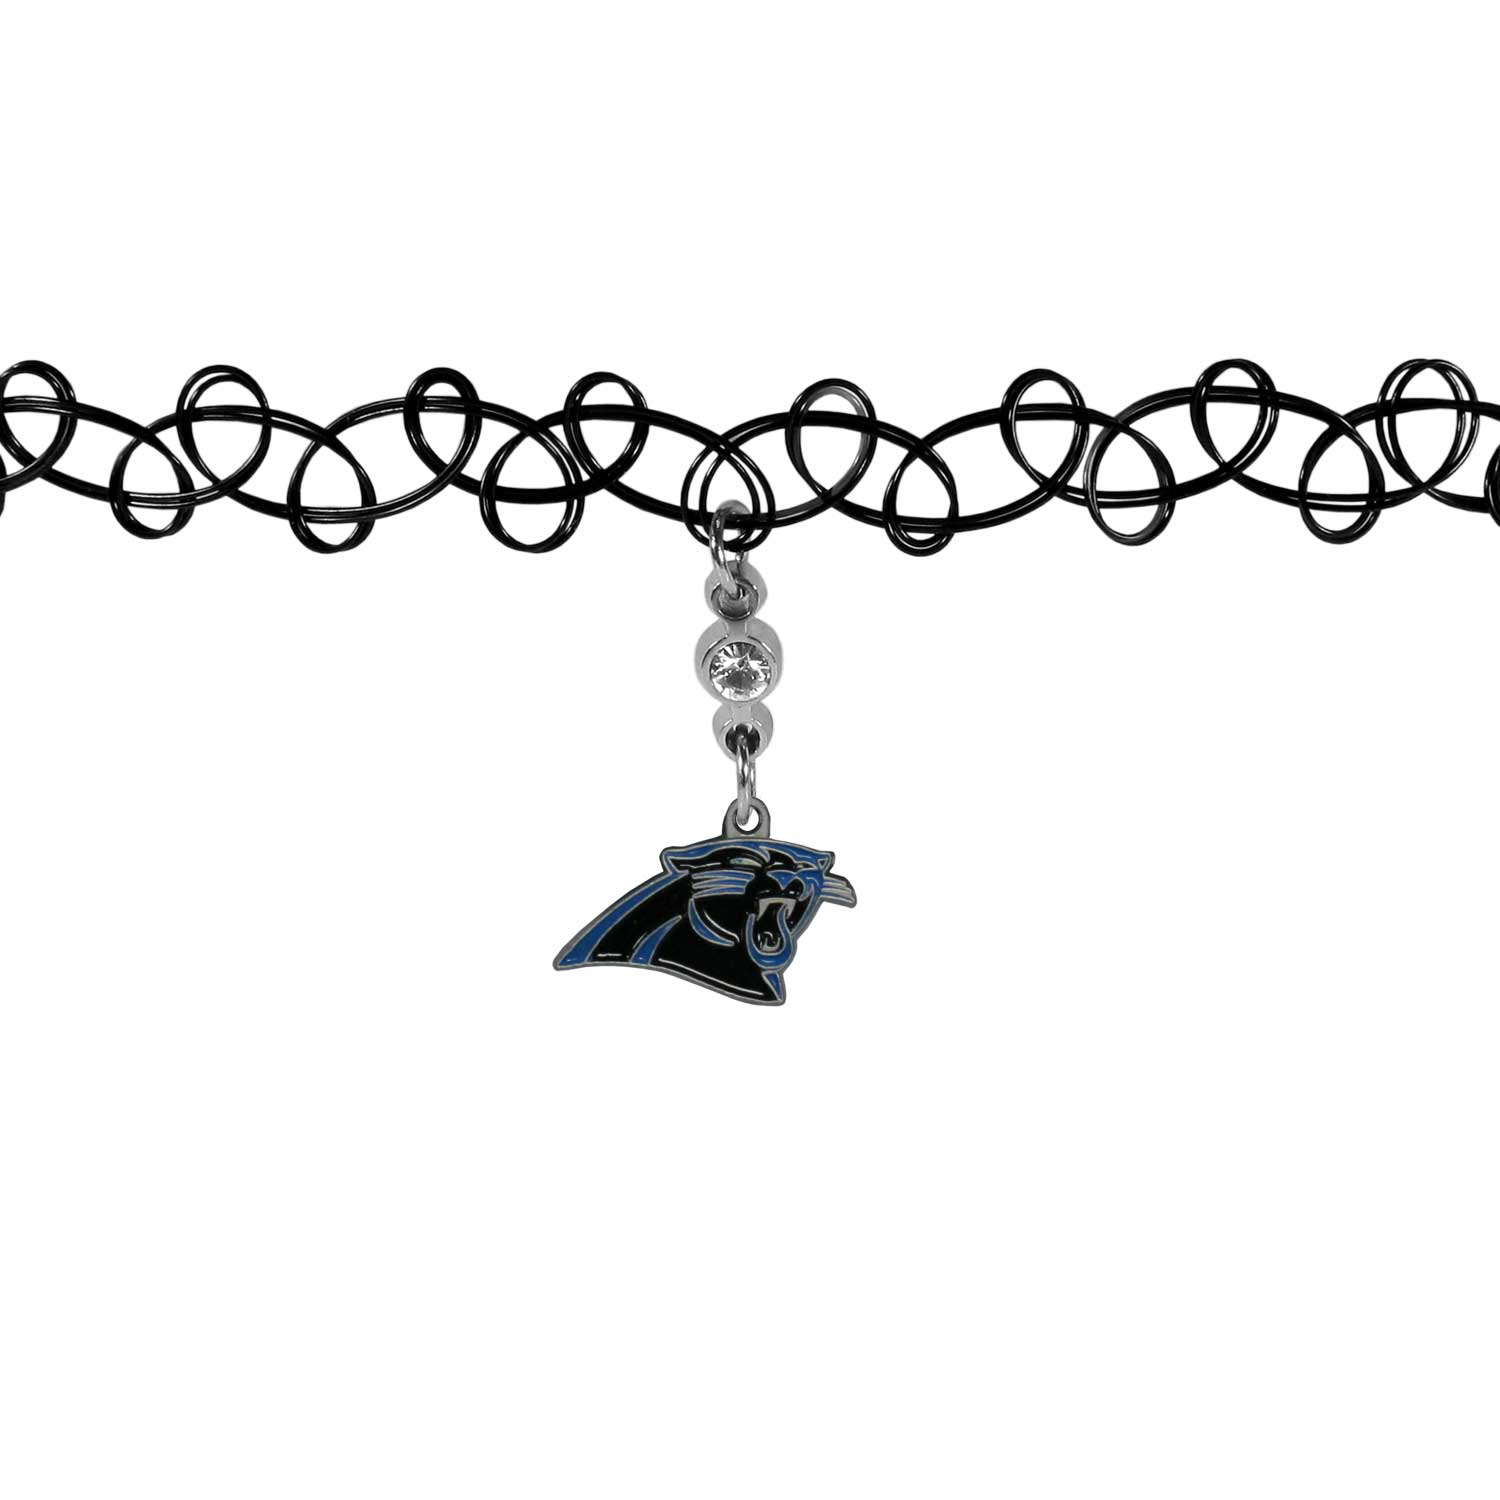 Carolina Panthers Knotted Choker - This retro, knotted choker is a cool and unique piece of fan jewelry. The tattoo style choker features a high polish Carolina Panthers charm with rhinestone accents.